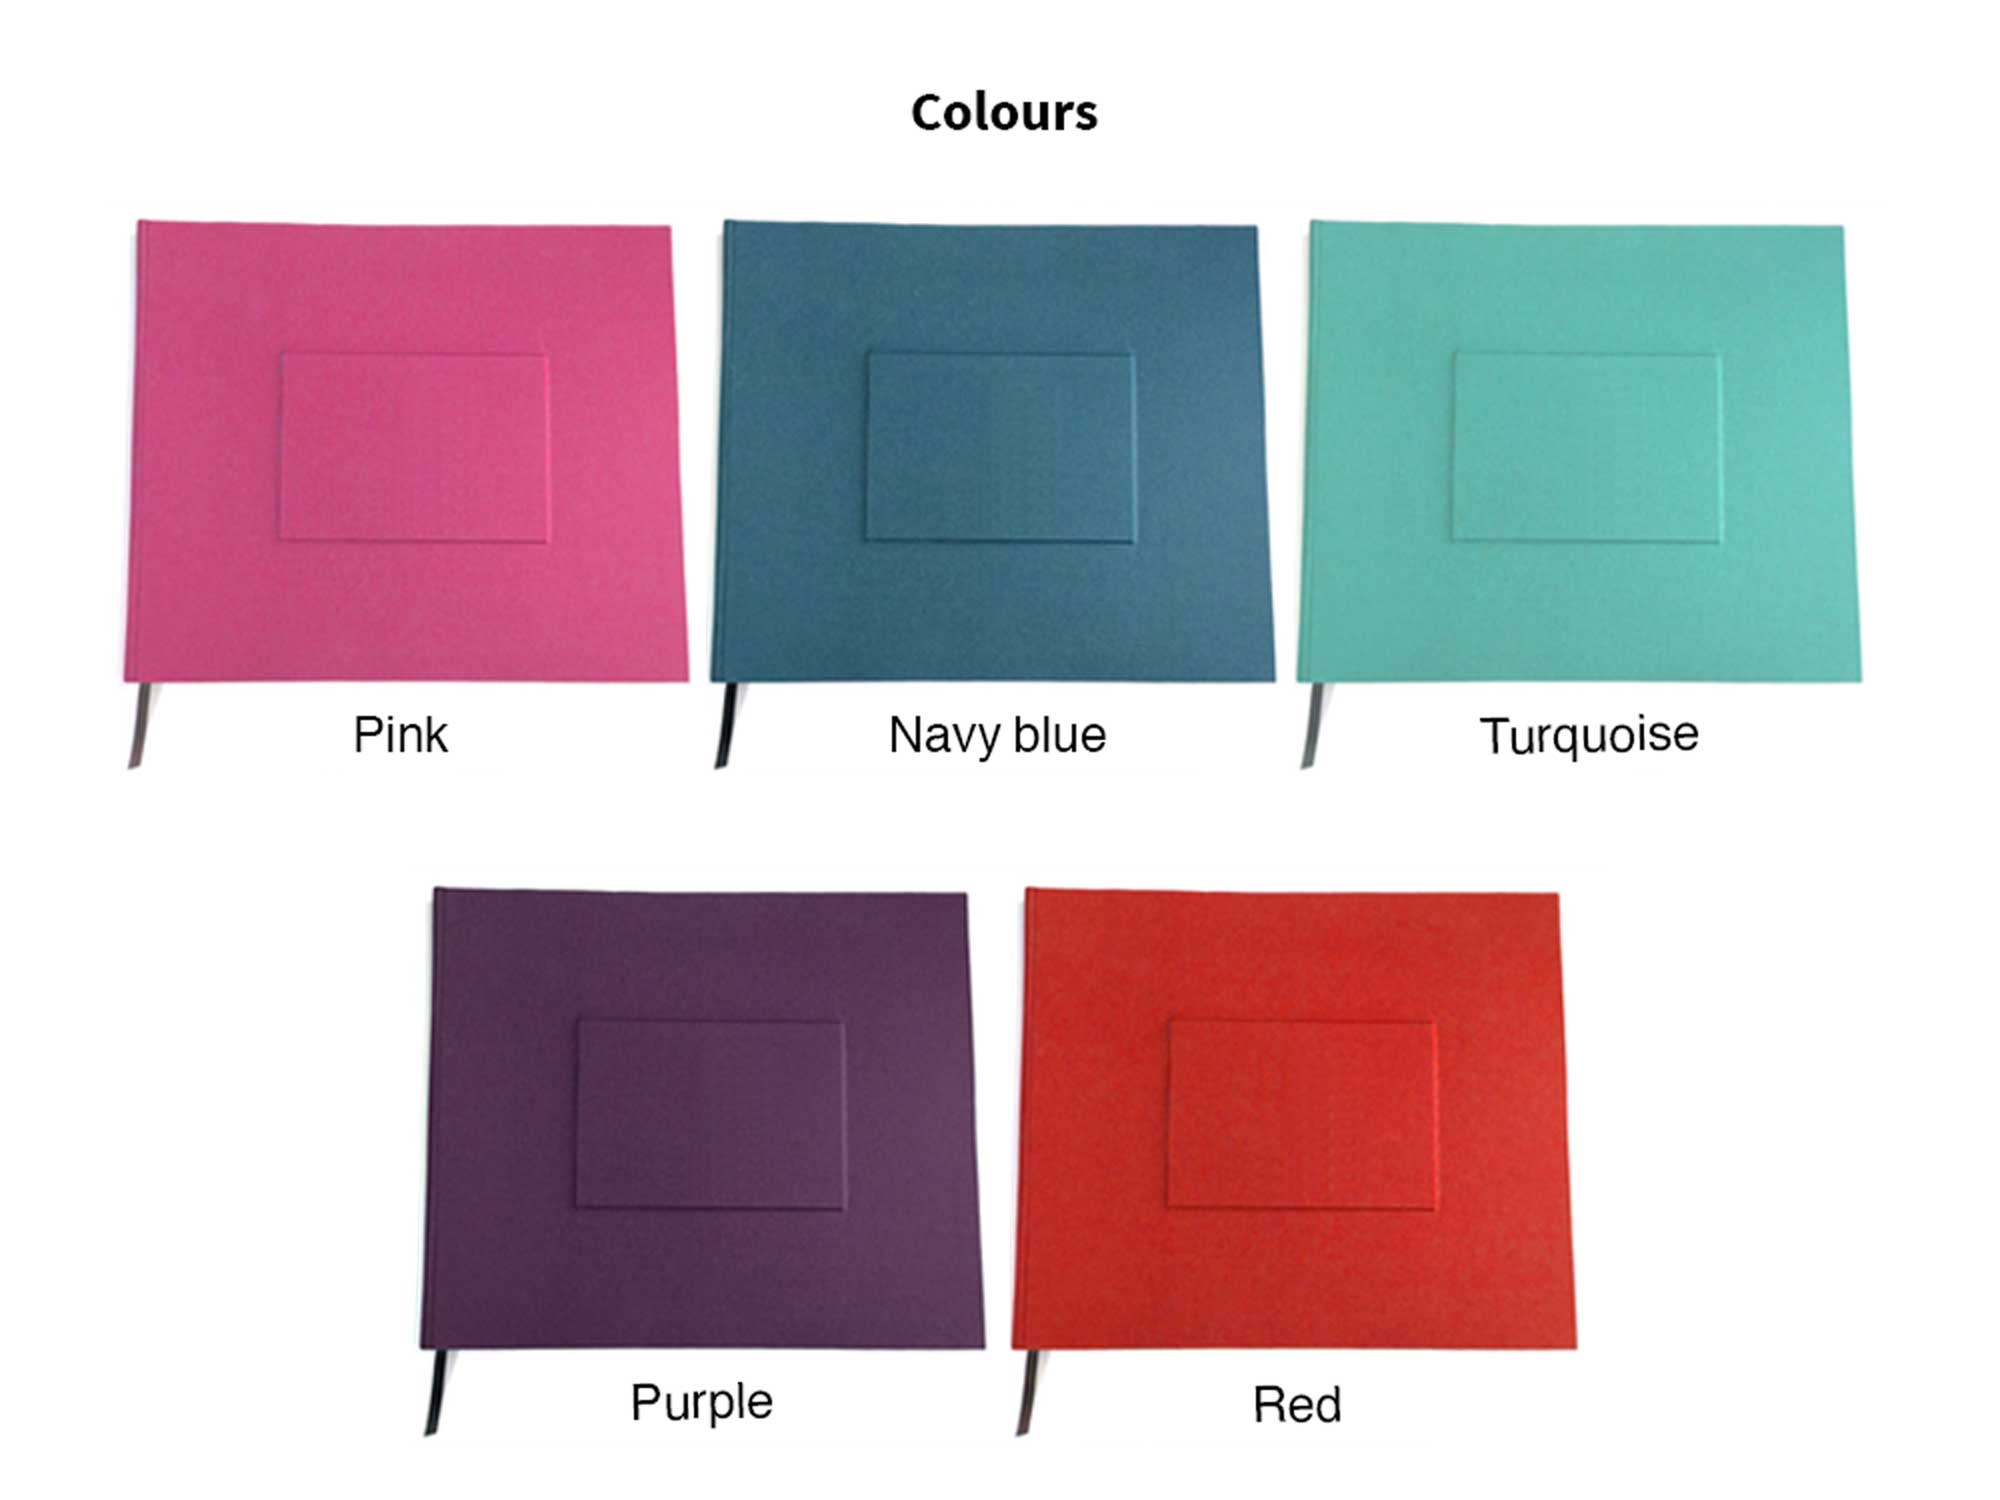 wedding guest book from Bookshell bindery available in pink, navy blue, turquoise, purple, red book cloth